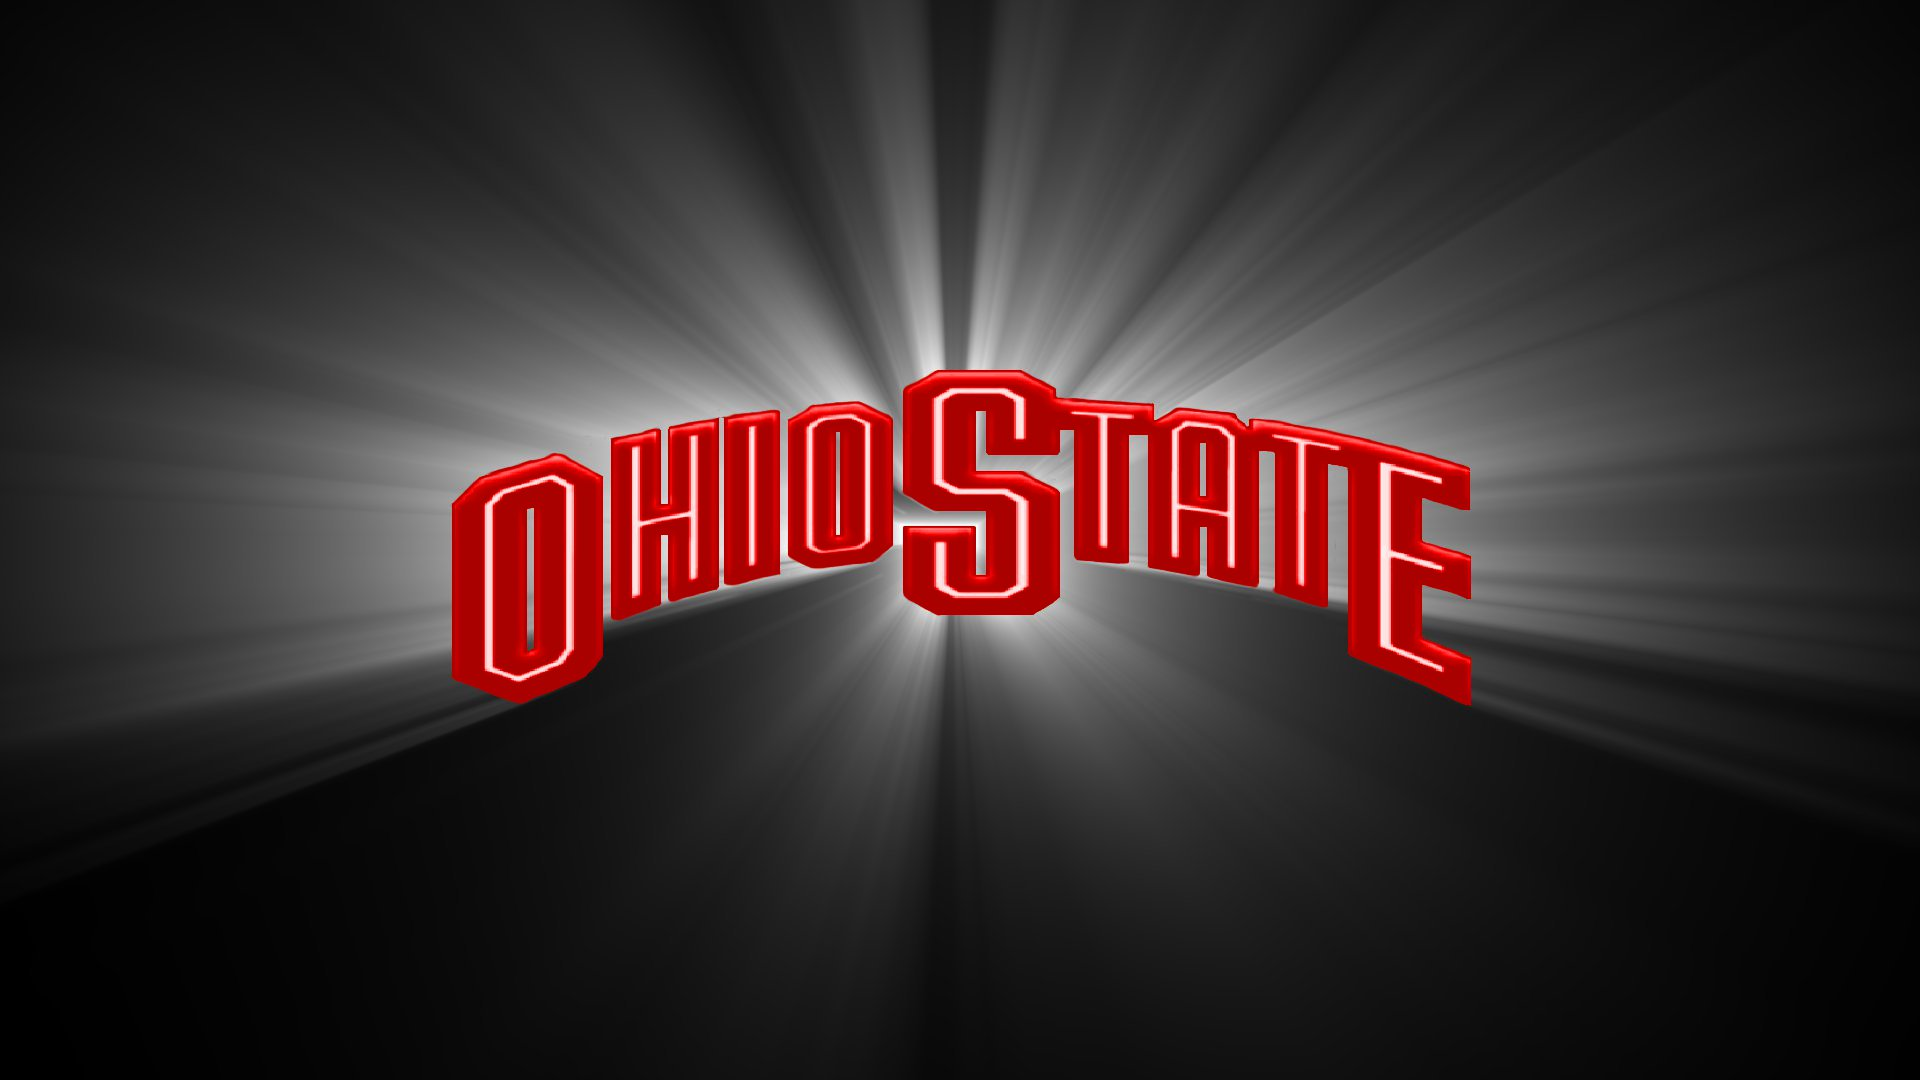 OSU Wallpaper 100   Ohio State Football Wallpaper 29189493 1920x1080